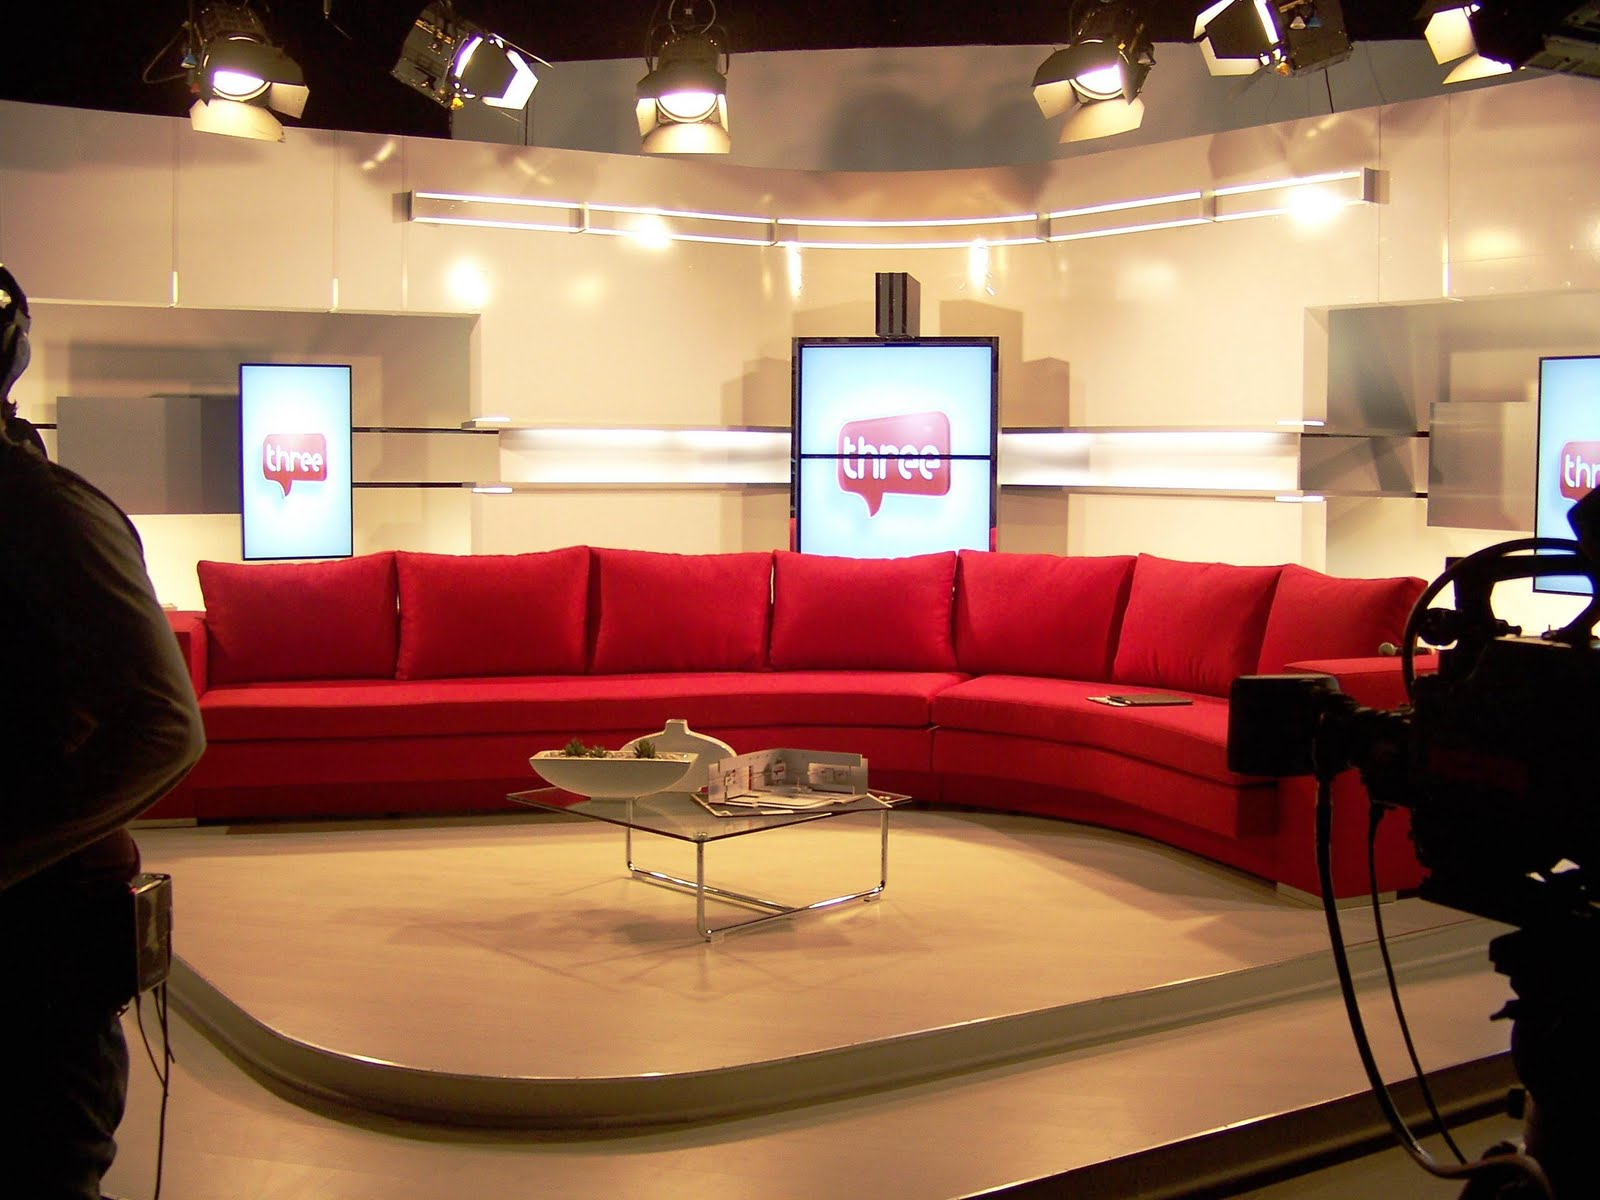 Tv With Thinus First Look Here S The Small Scale Set Model And Curtis Elliott Designs Late Night Talk Show Furniture